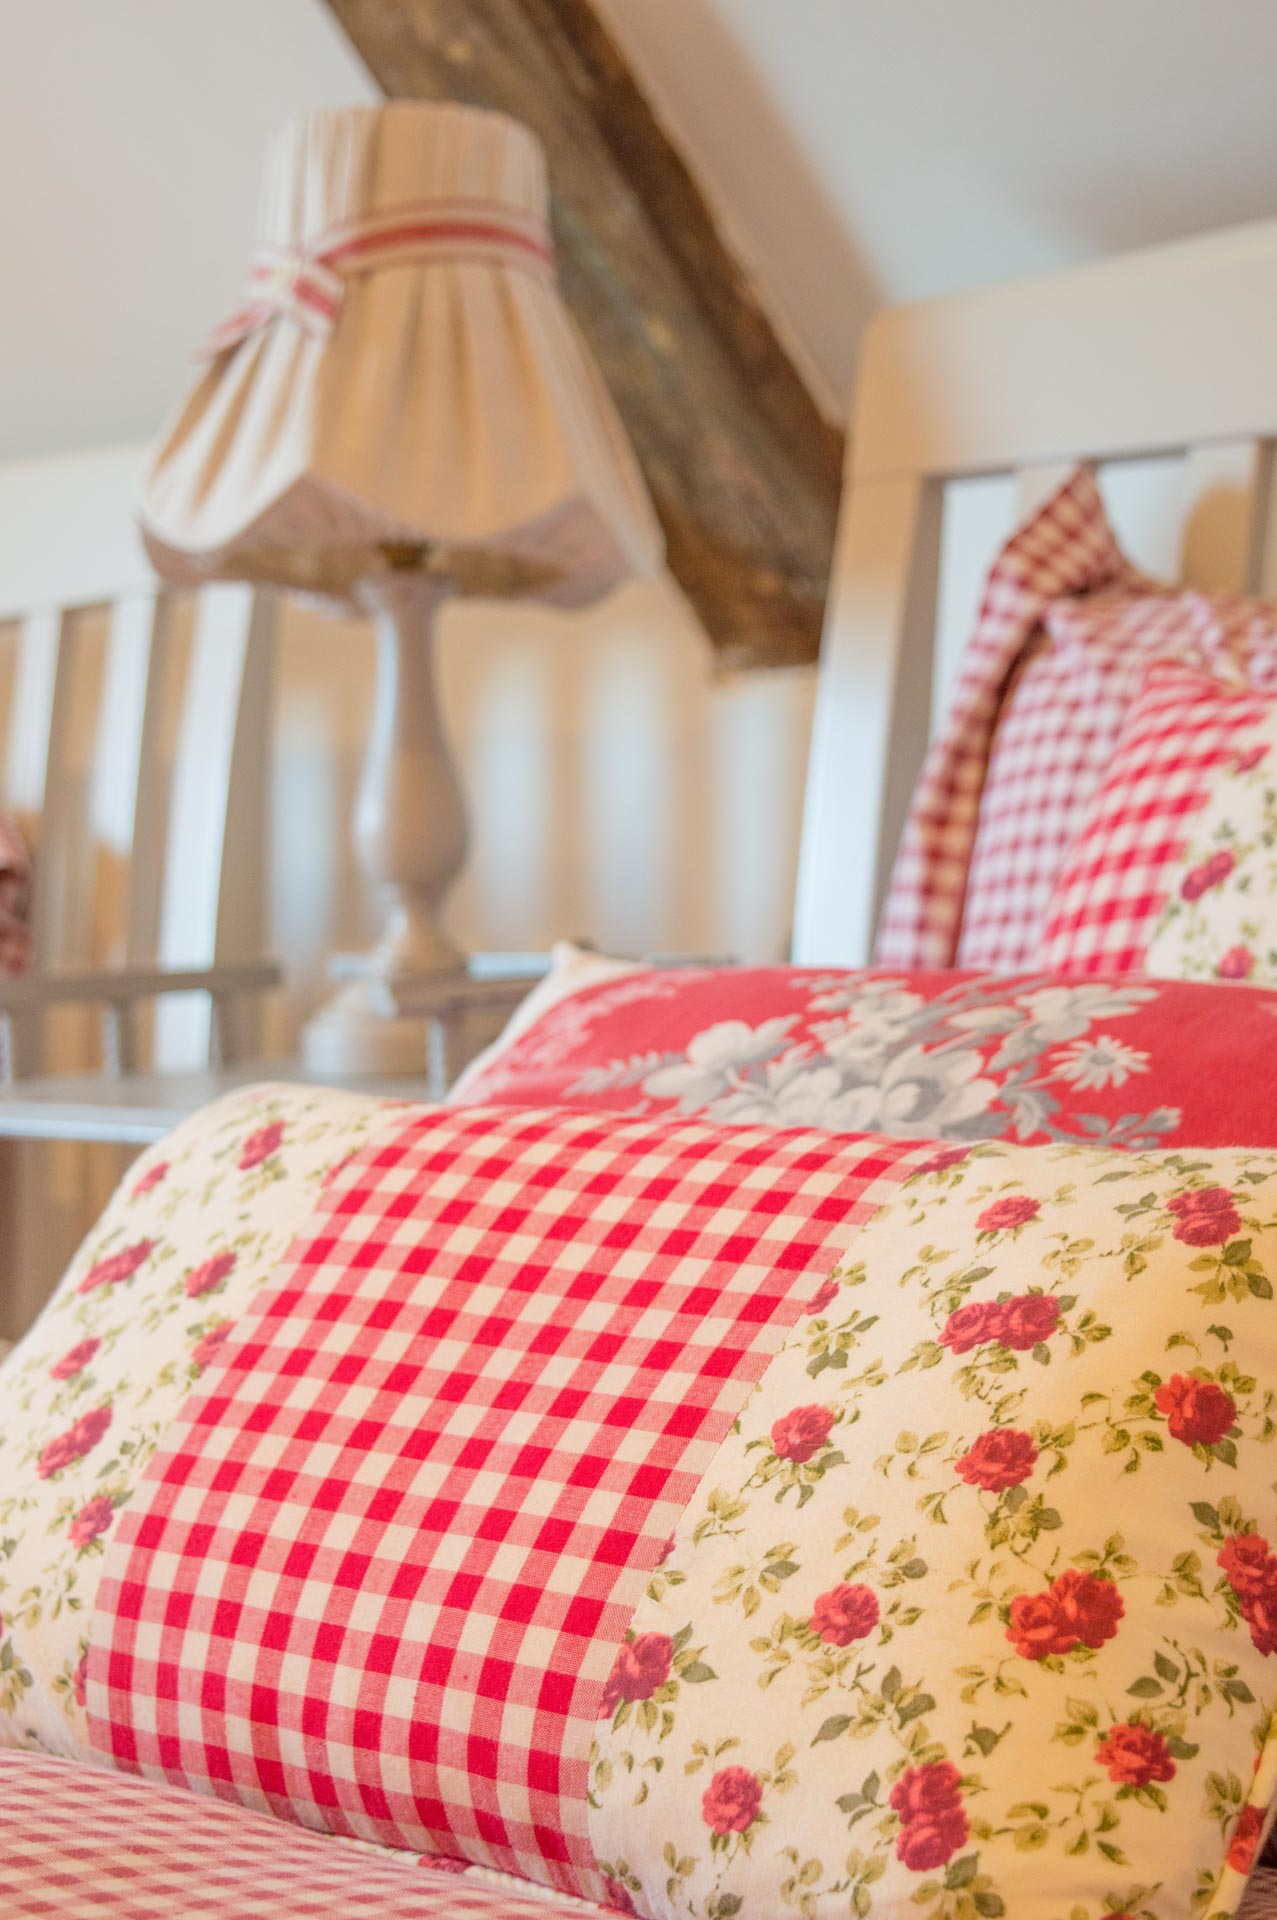 Pink and flowery bedroom pillows.